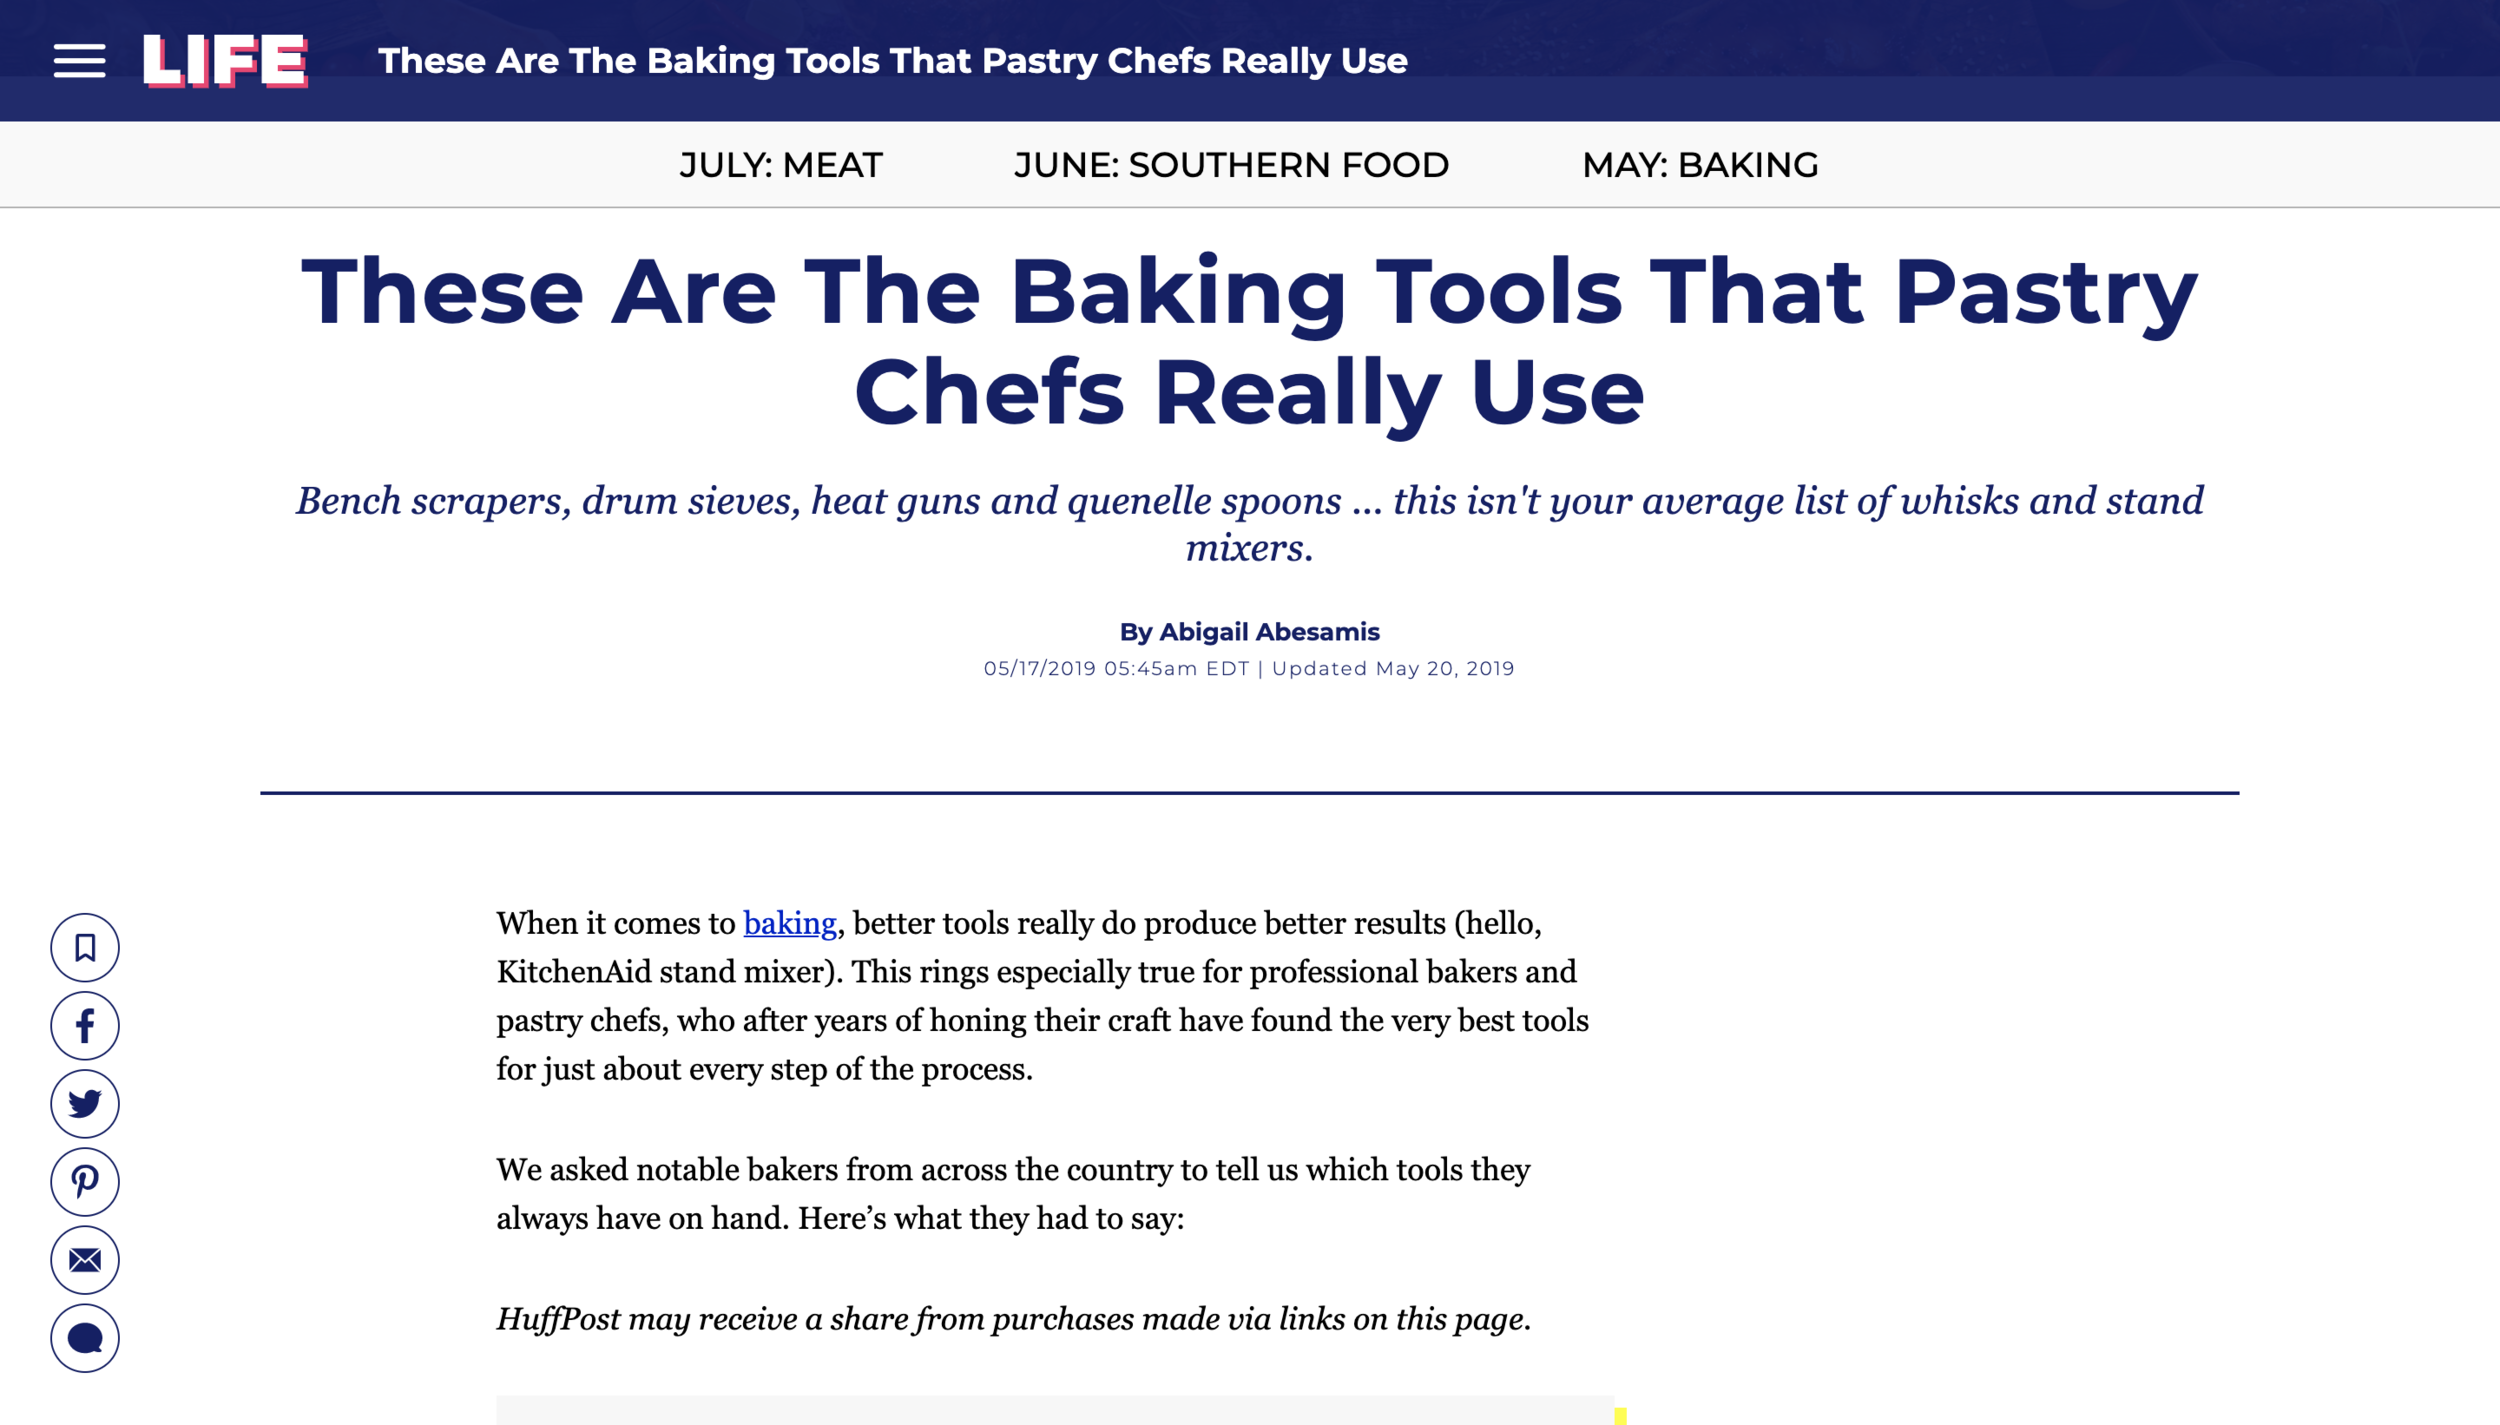 HuffPost Baking Tools.png